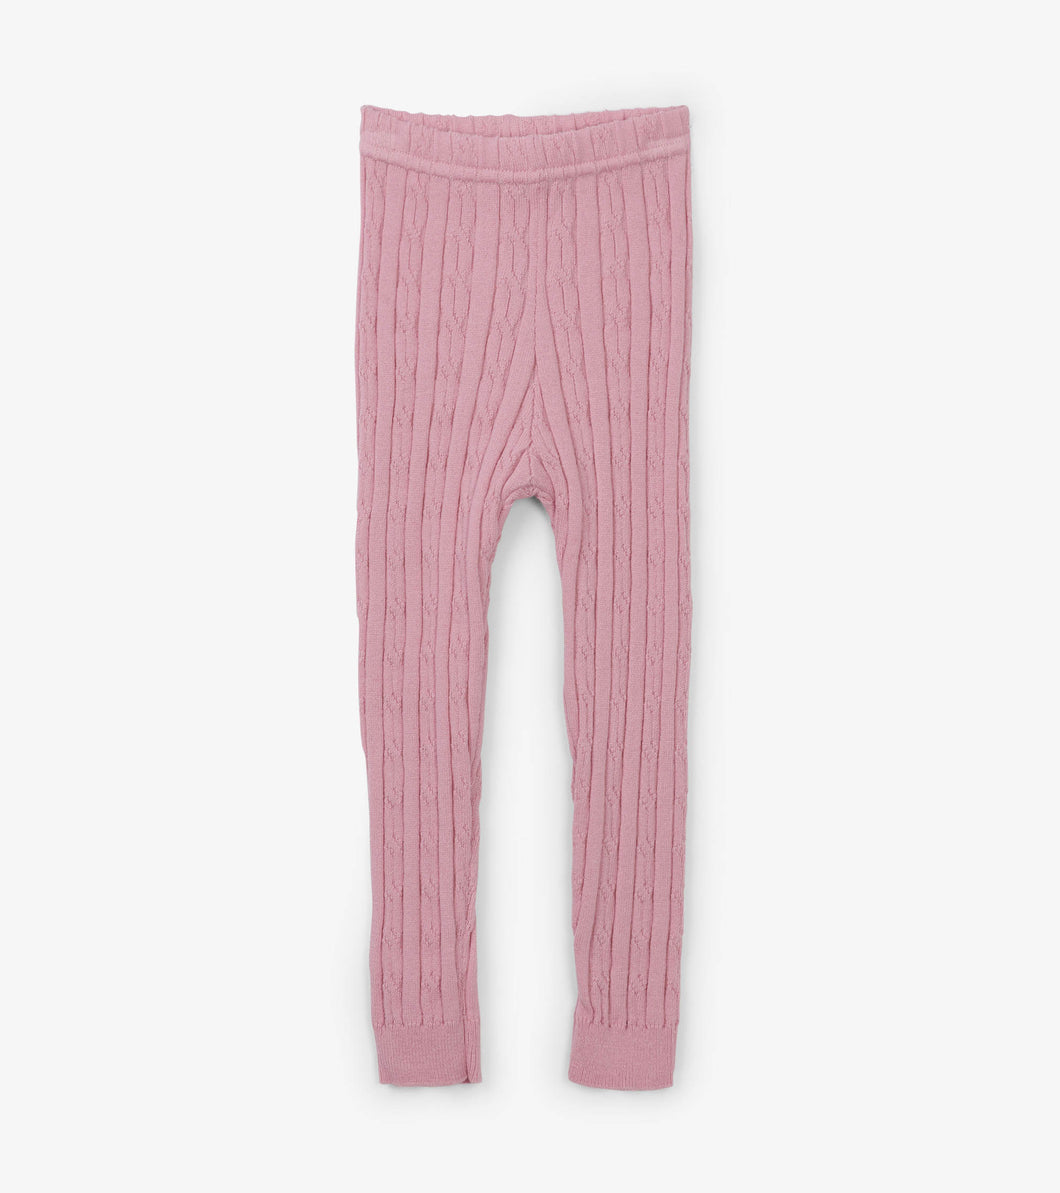 Pink Cable Knit Baby Leggings